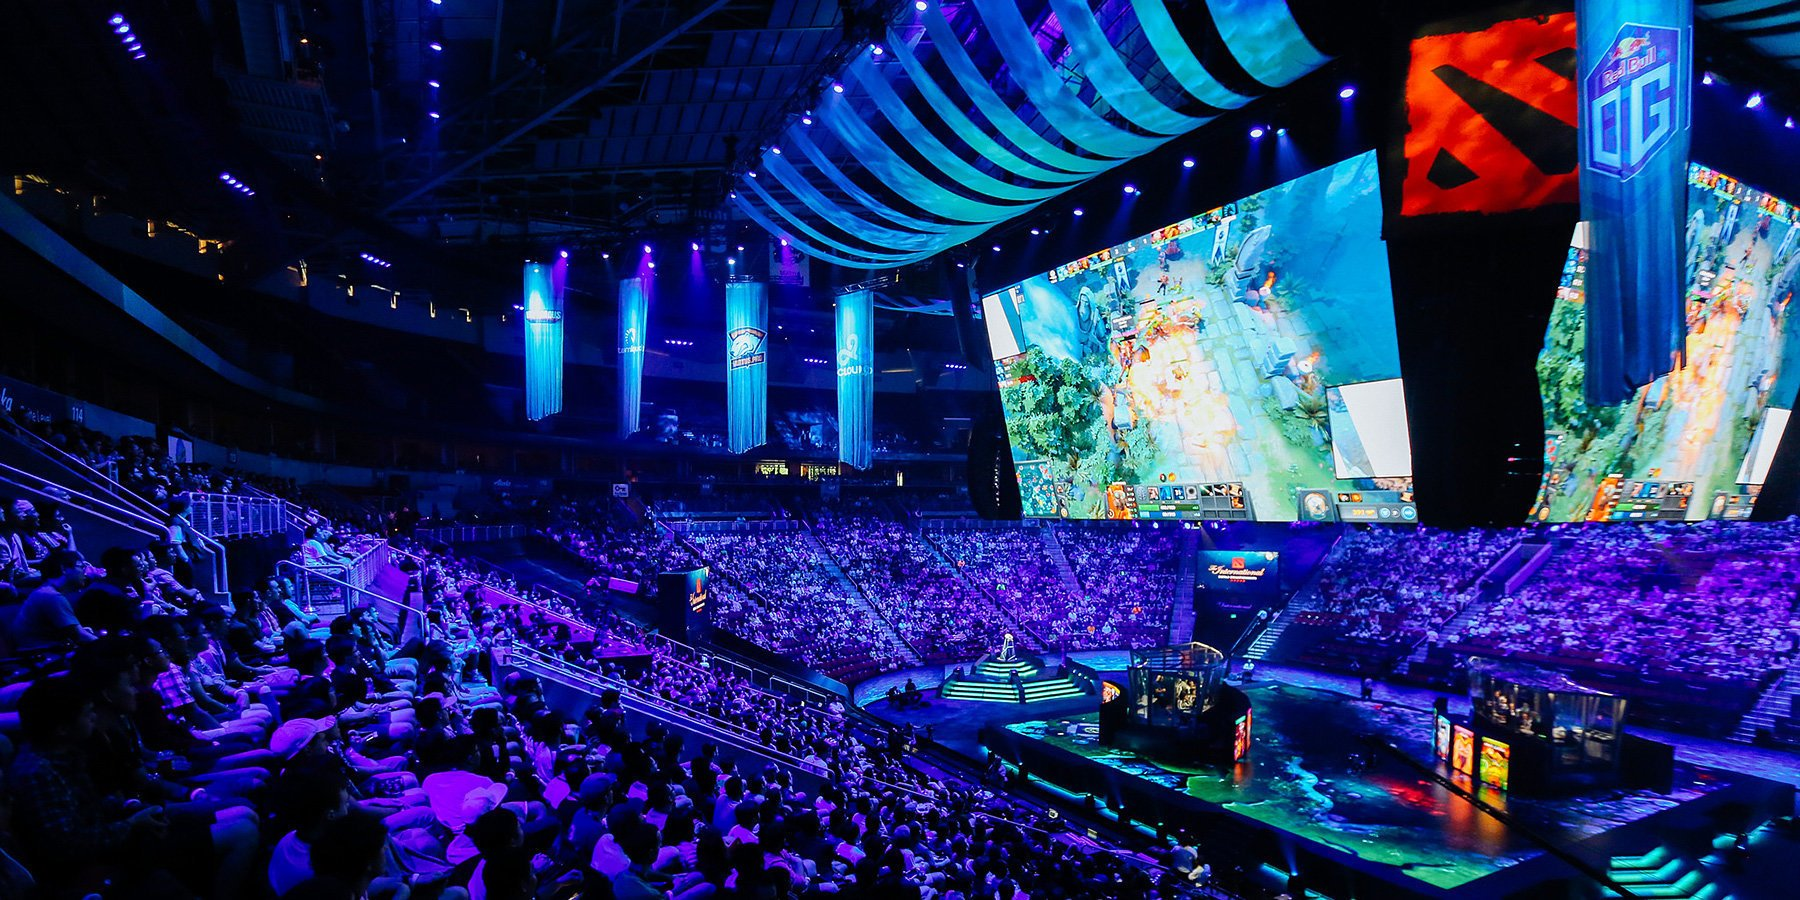 Dota 2 Major The International 2019 Sells Out in Seconds